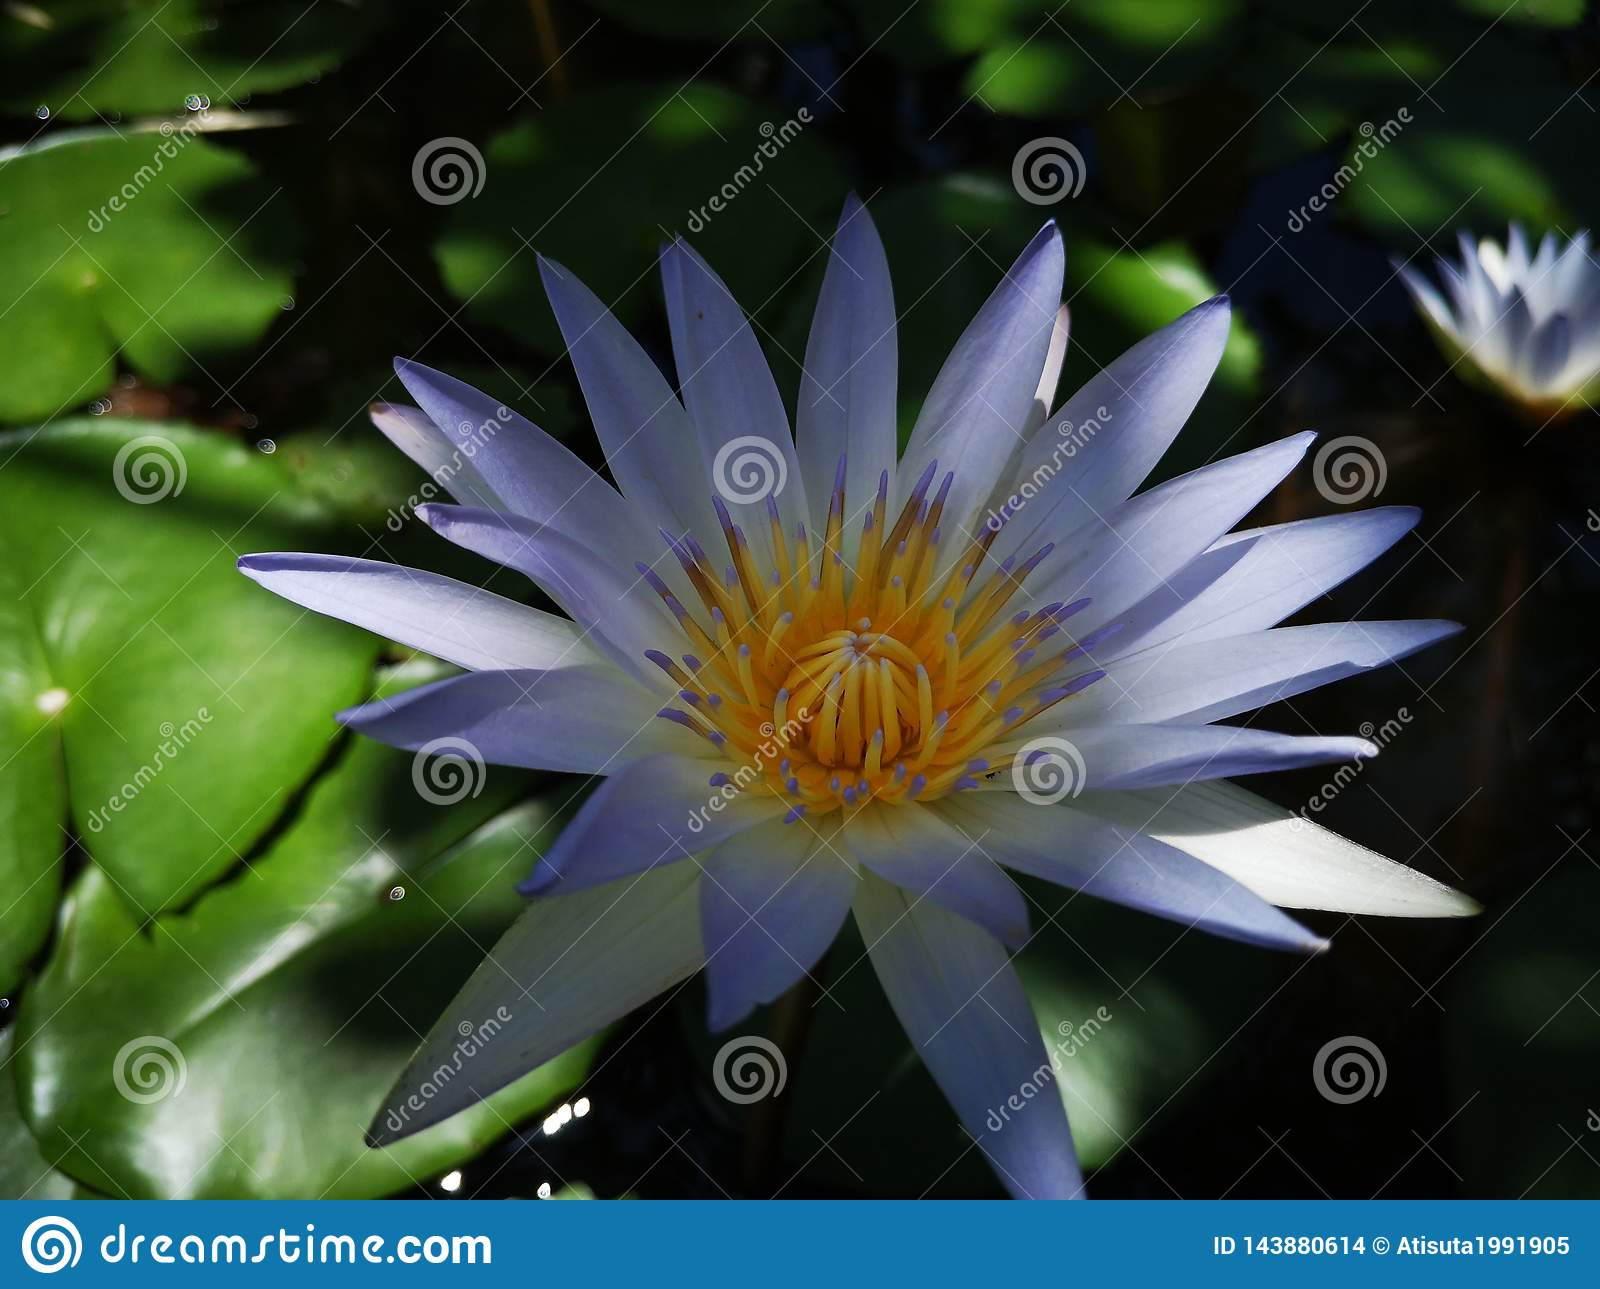 Lotus†‹lily†‹water†‹plant†‹â€ ‹white†‹blue†‹color†‹tropical†‹flower†‹